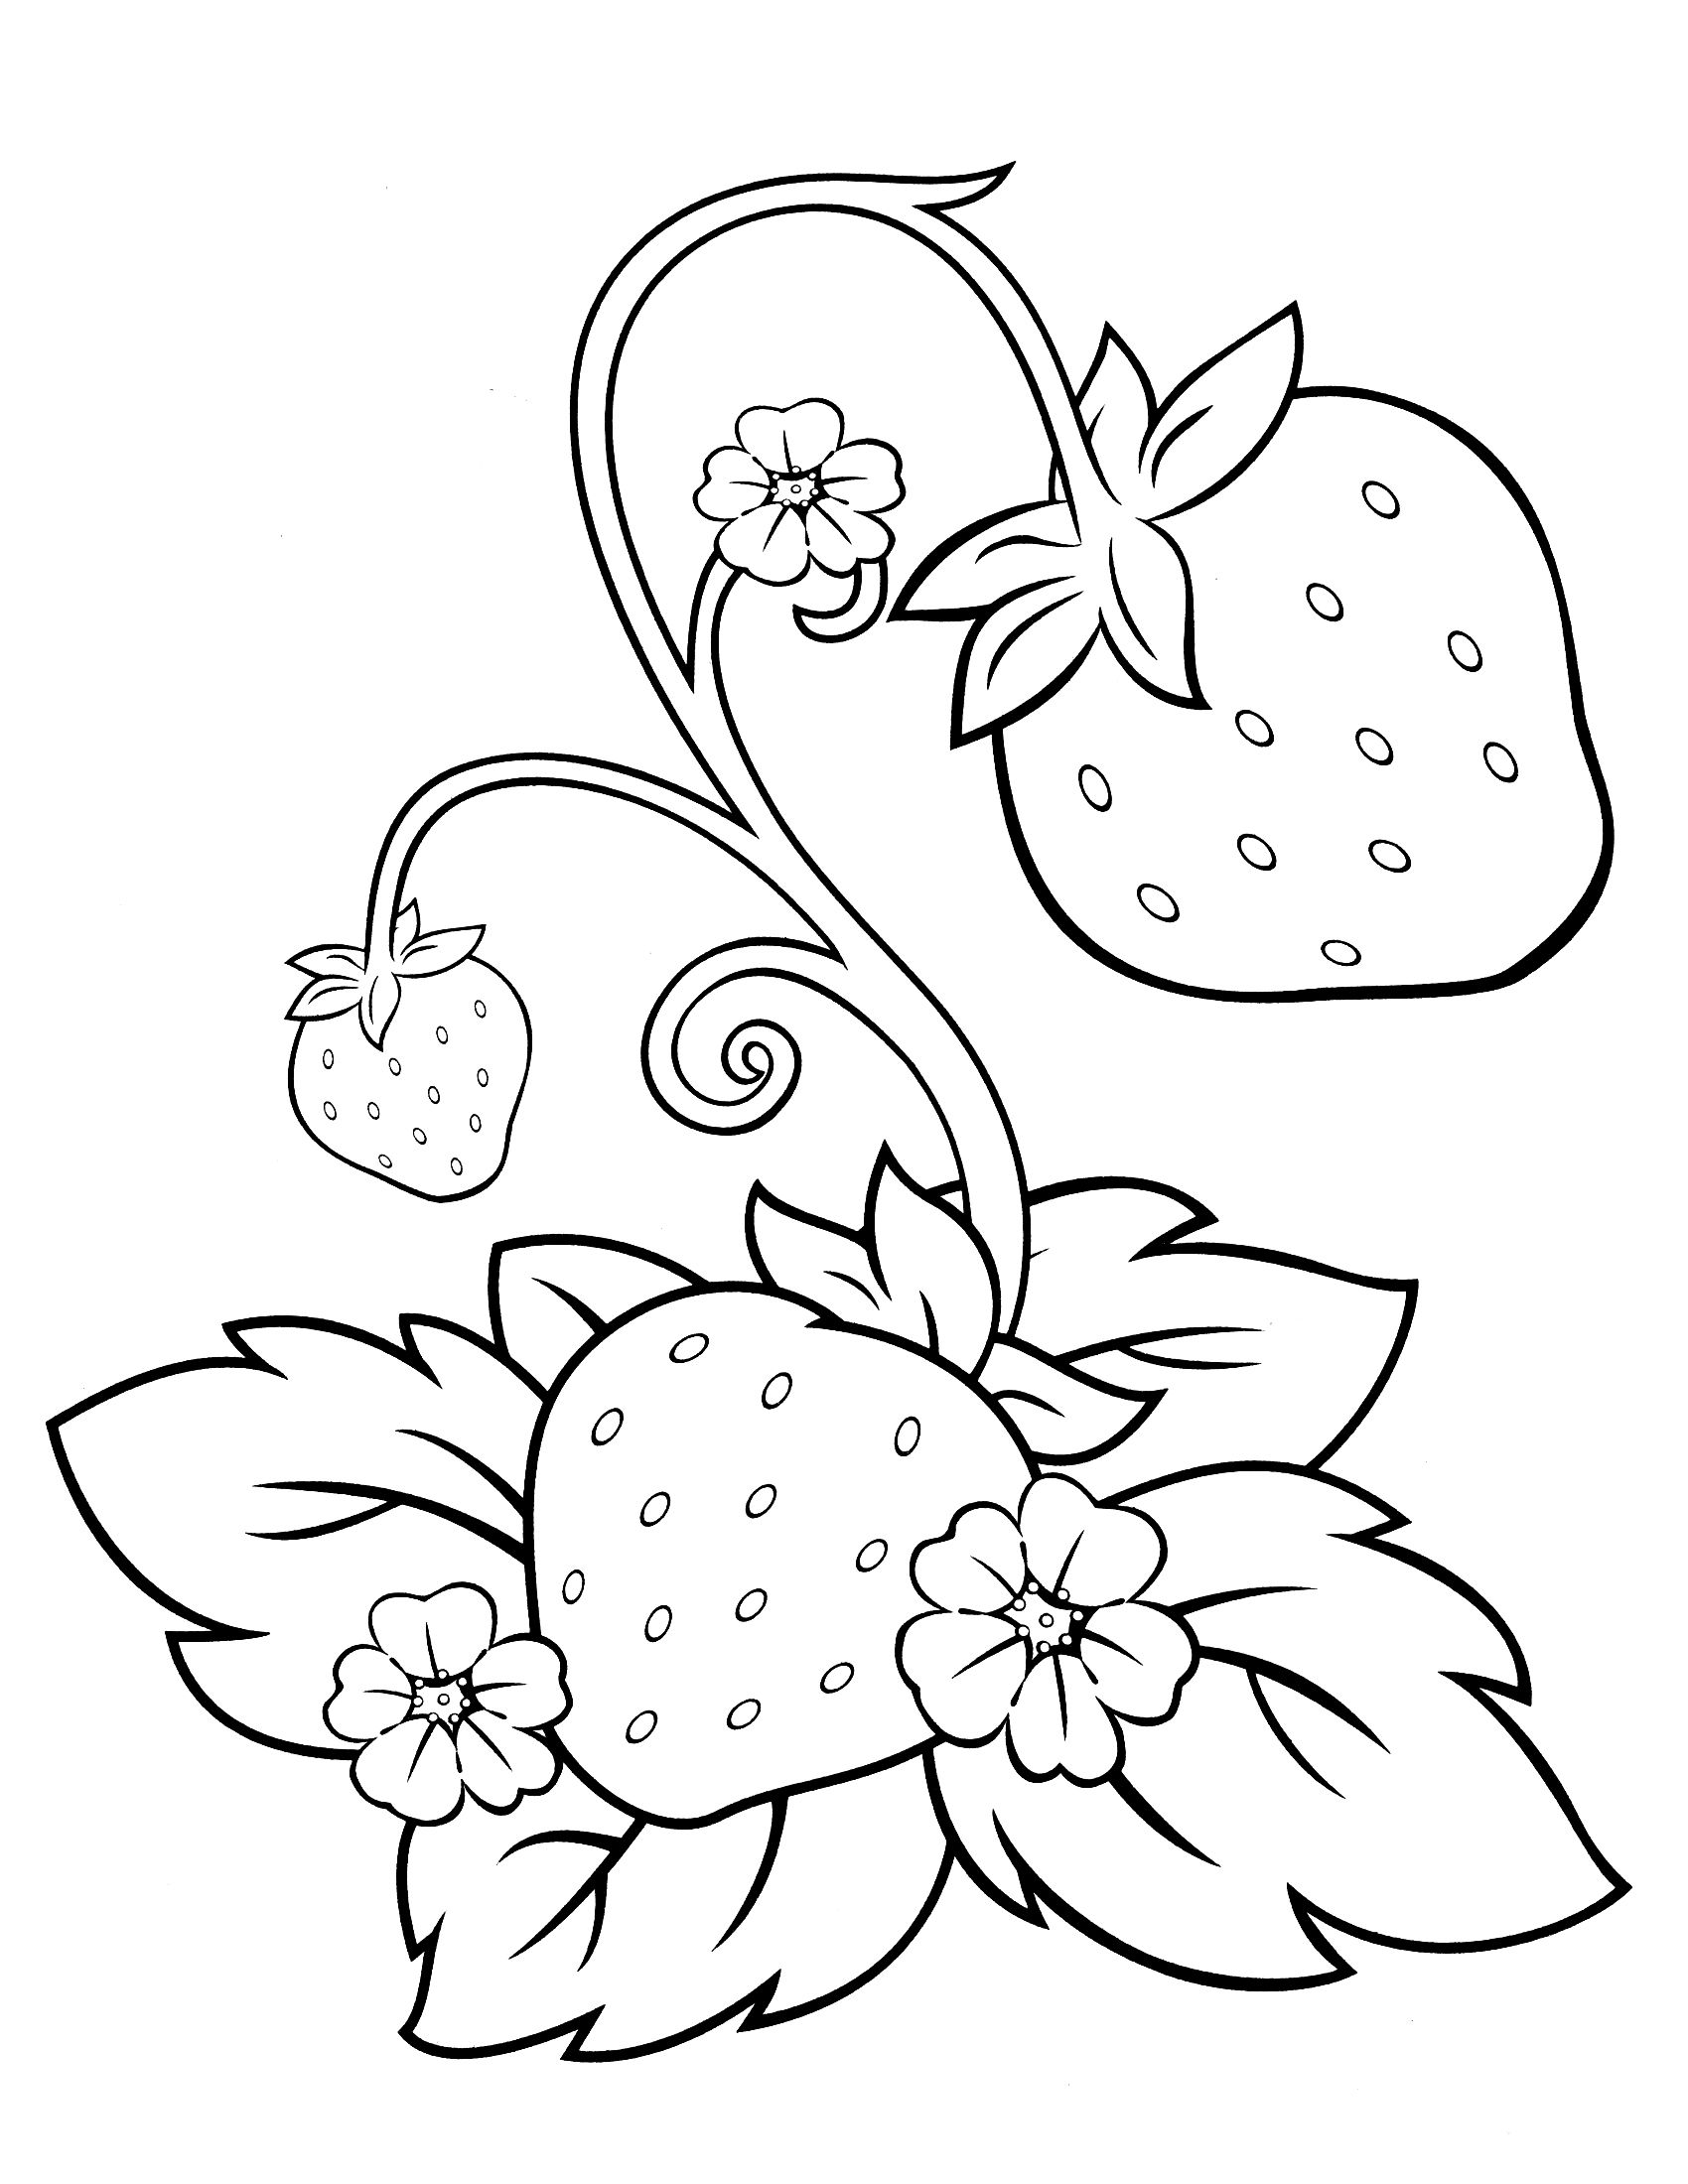 strawberry shortcake coloring page jedlo pinterest coloring